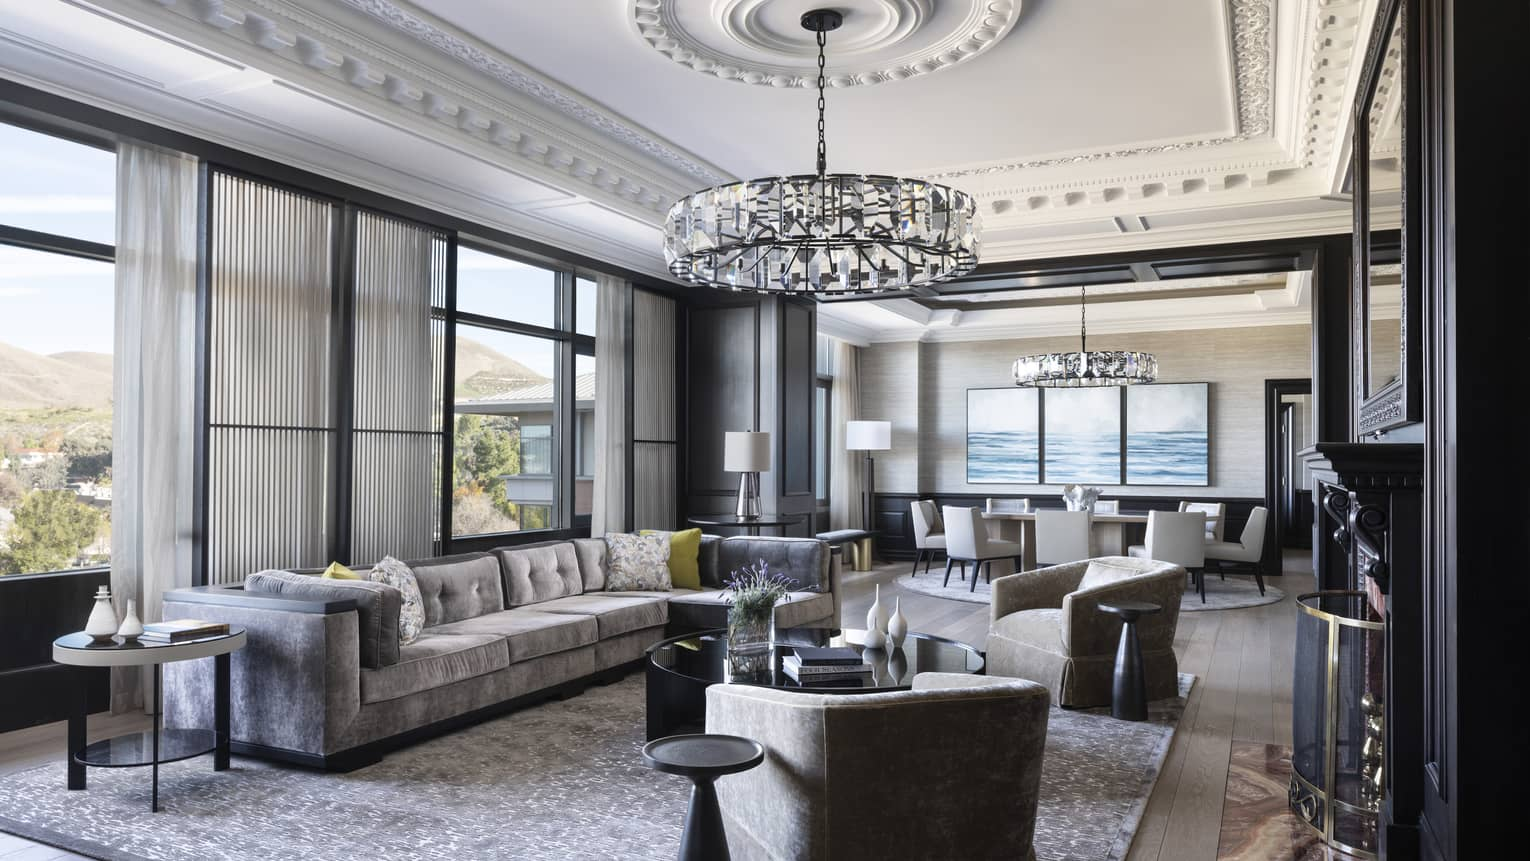 Presidential Suite featuring a chic, grey, L-shaped sofa under a ceiling that boasts elaborate crown molding and a crystal chandelier